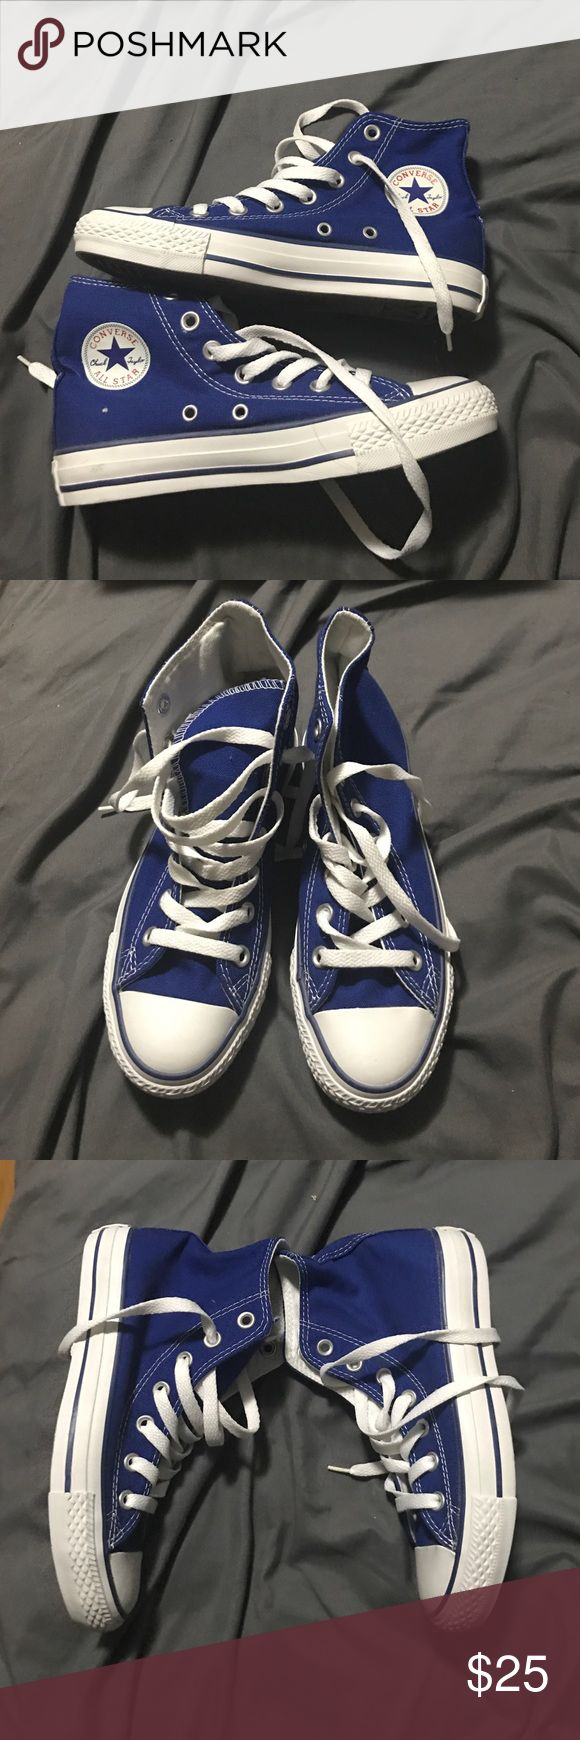 Walking dead converse shoes for sale - Blue All Star Converse High Tops